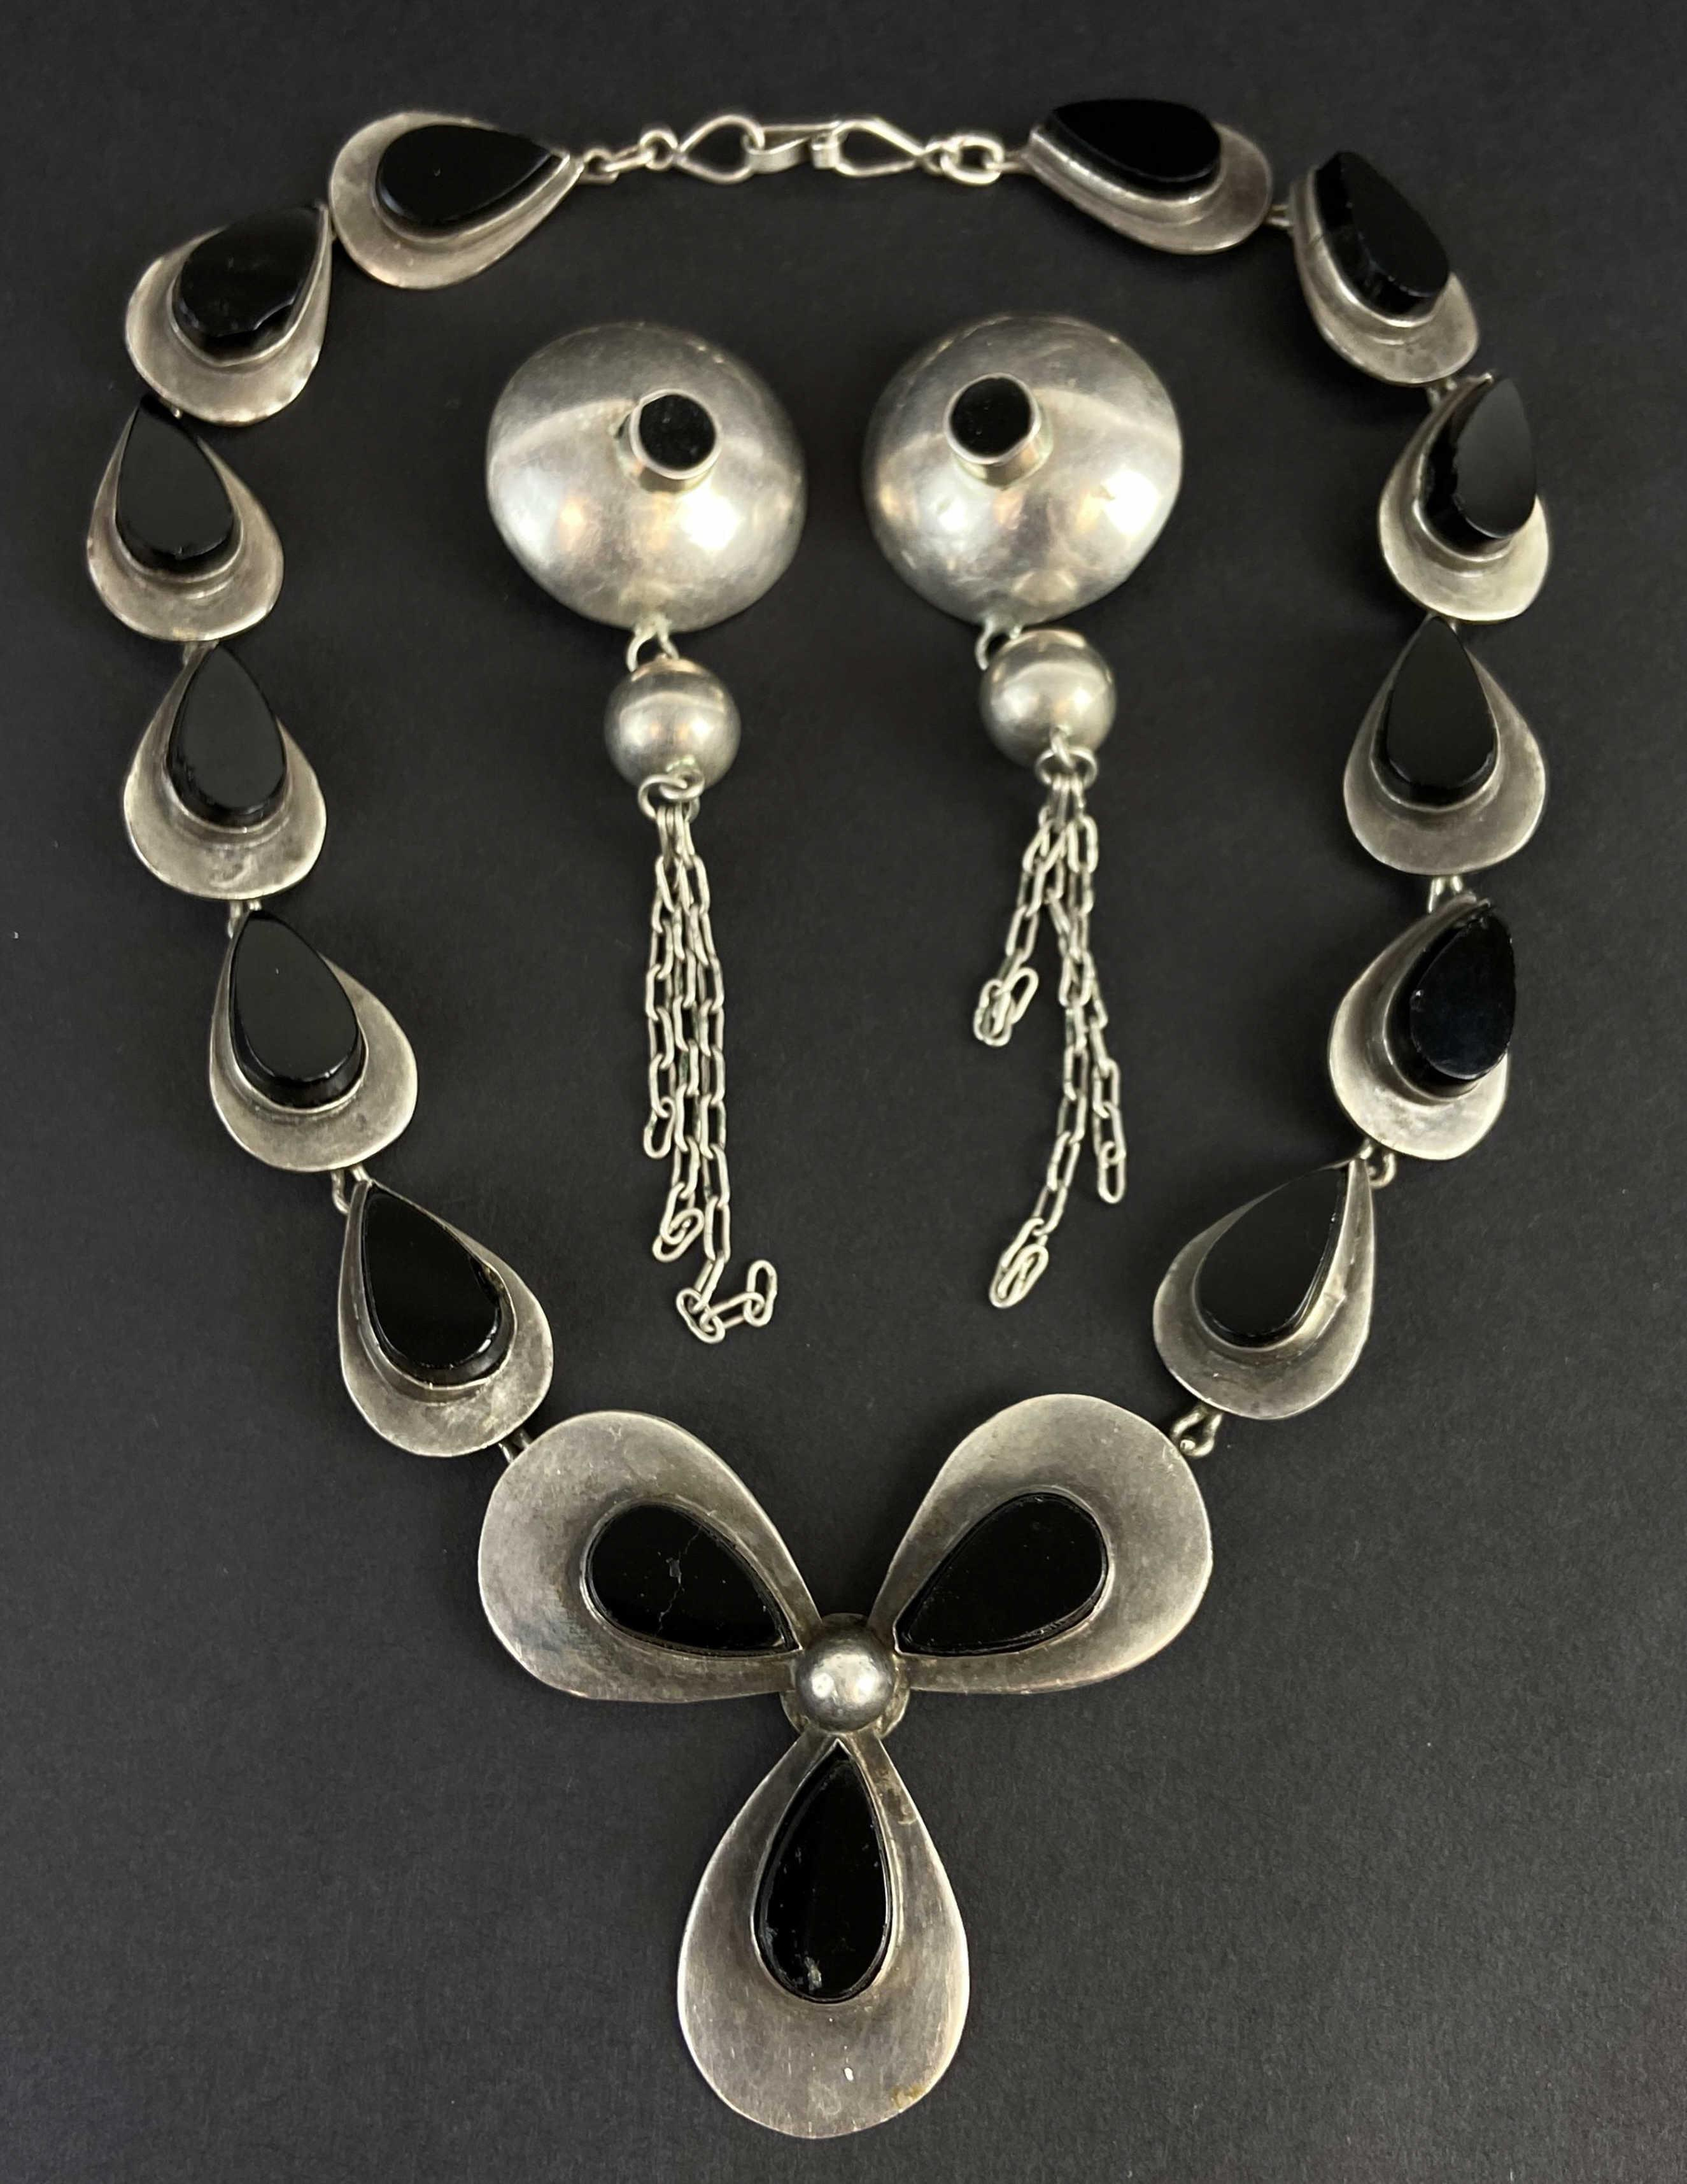 Mexico Modern Sterling & Onyx Necklace/ Earrings